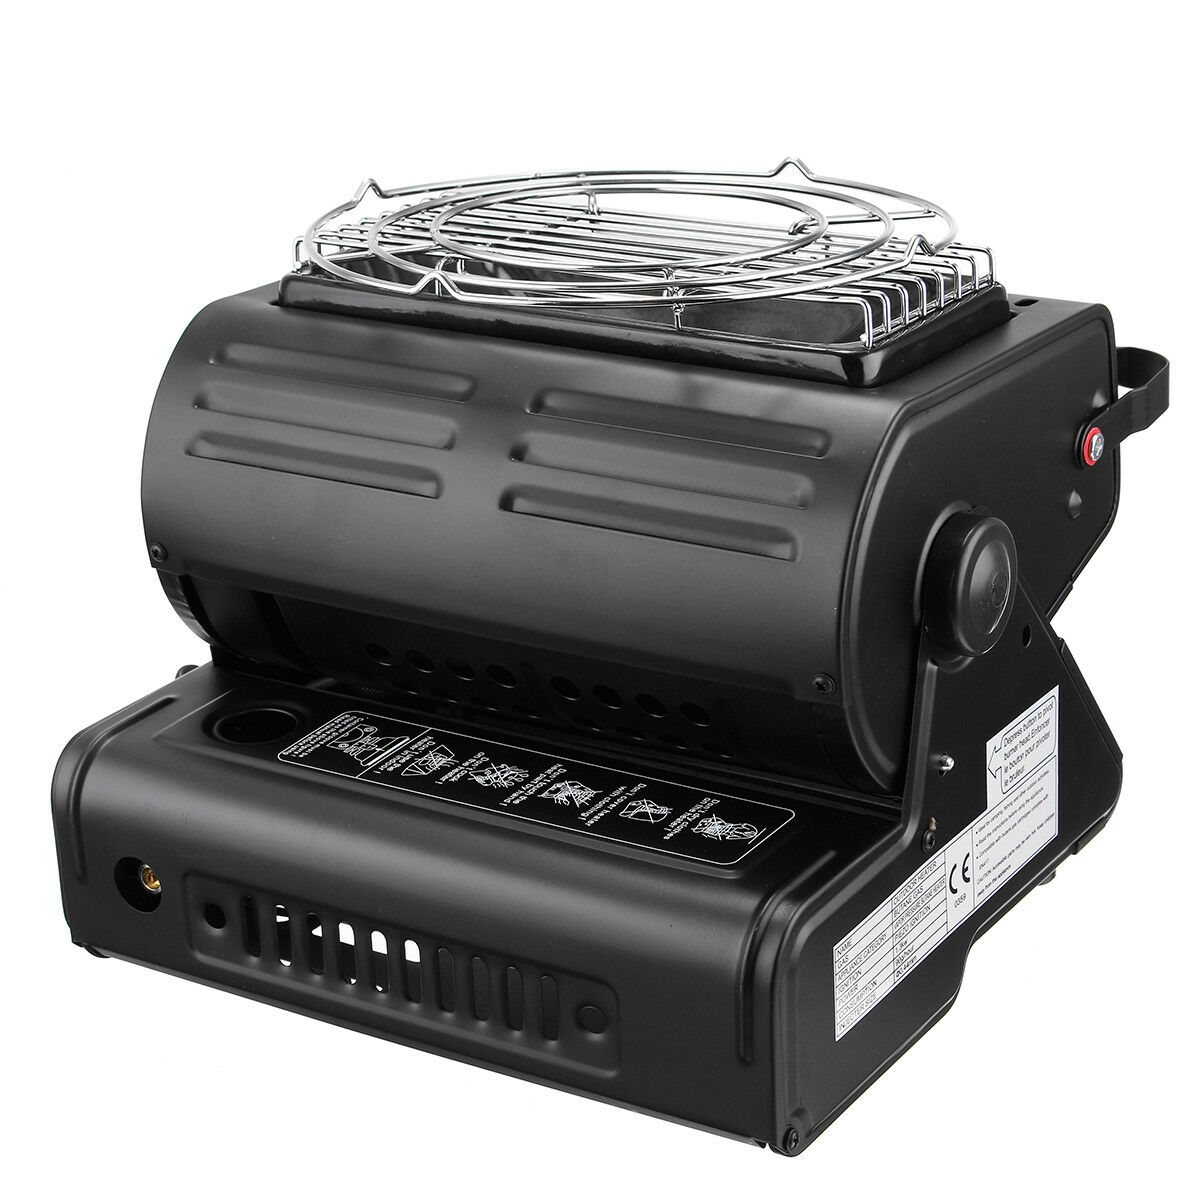 Outdoor Portable Space Gas Heaters Grill Cooking Grill Heaters Barbecue Camping Stoves Hike a91e61